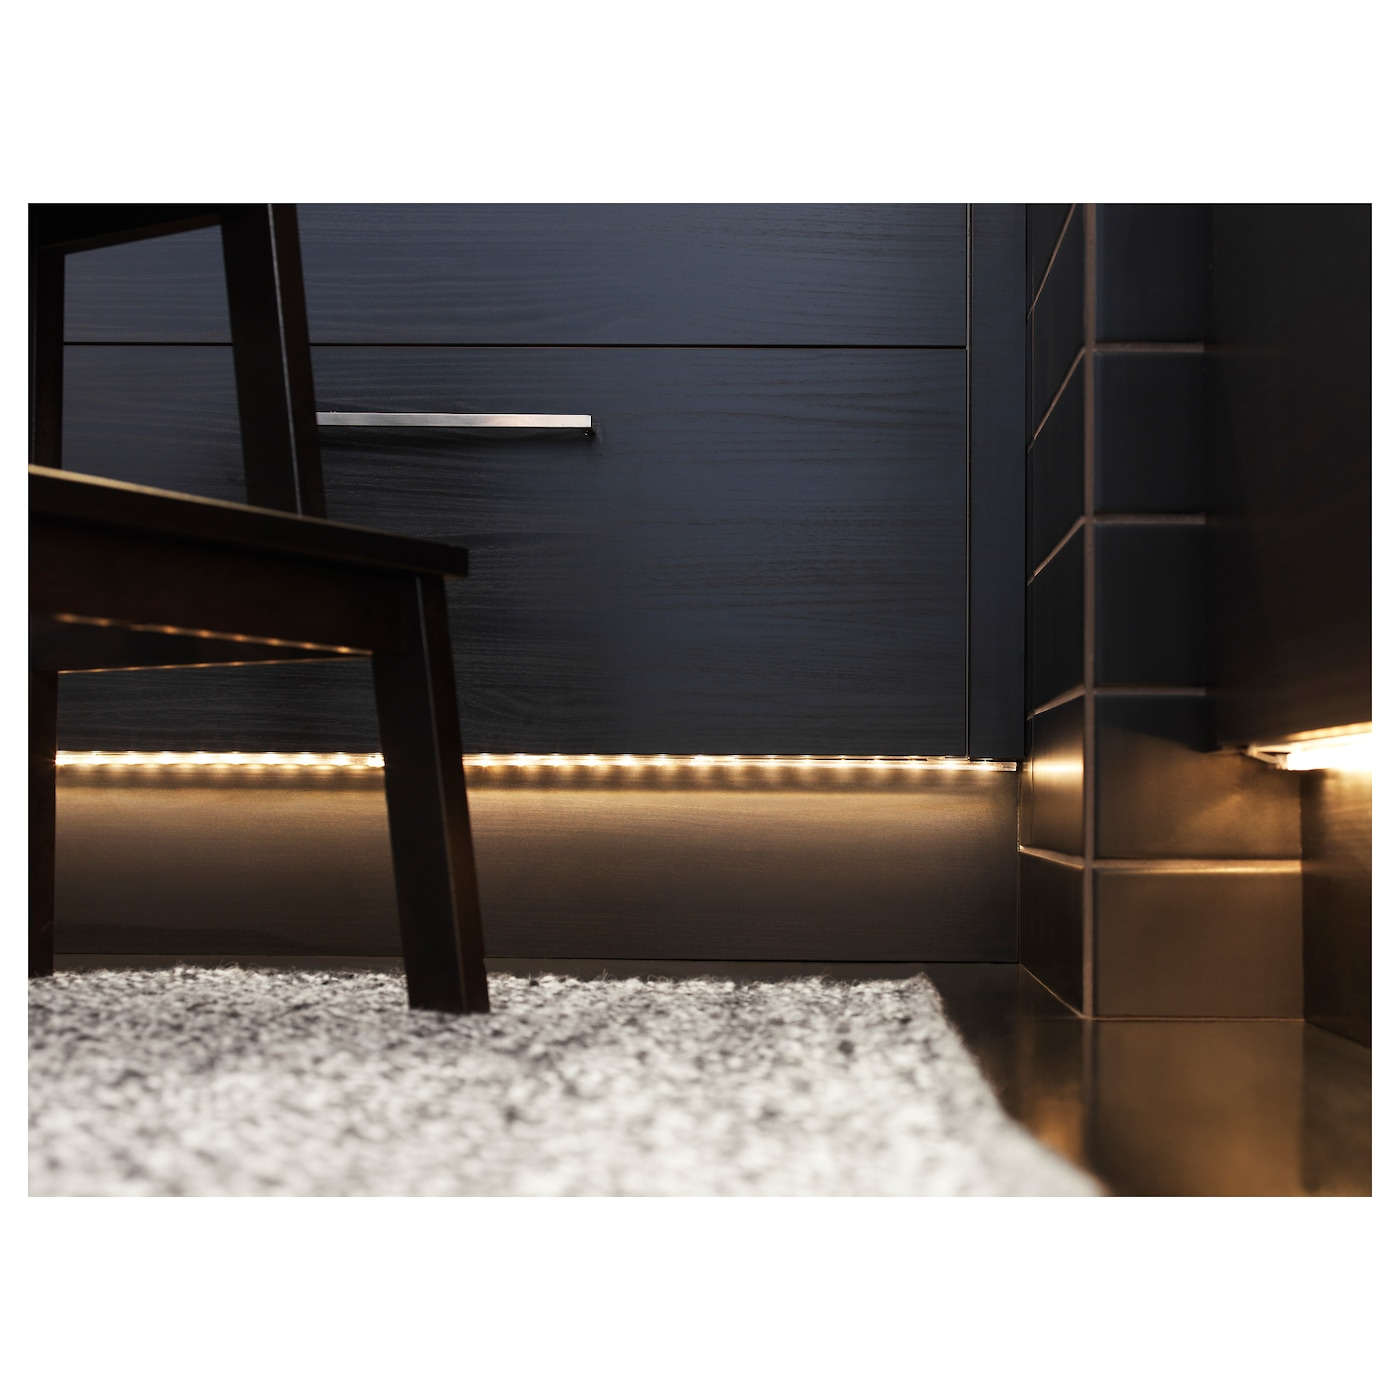 IKEA LEDBERG LED lighting strip flexible